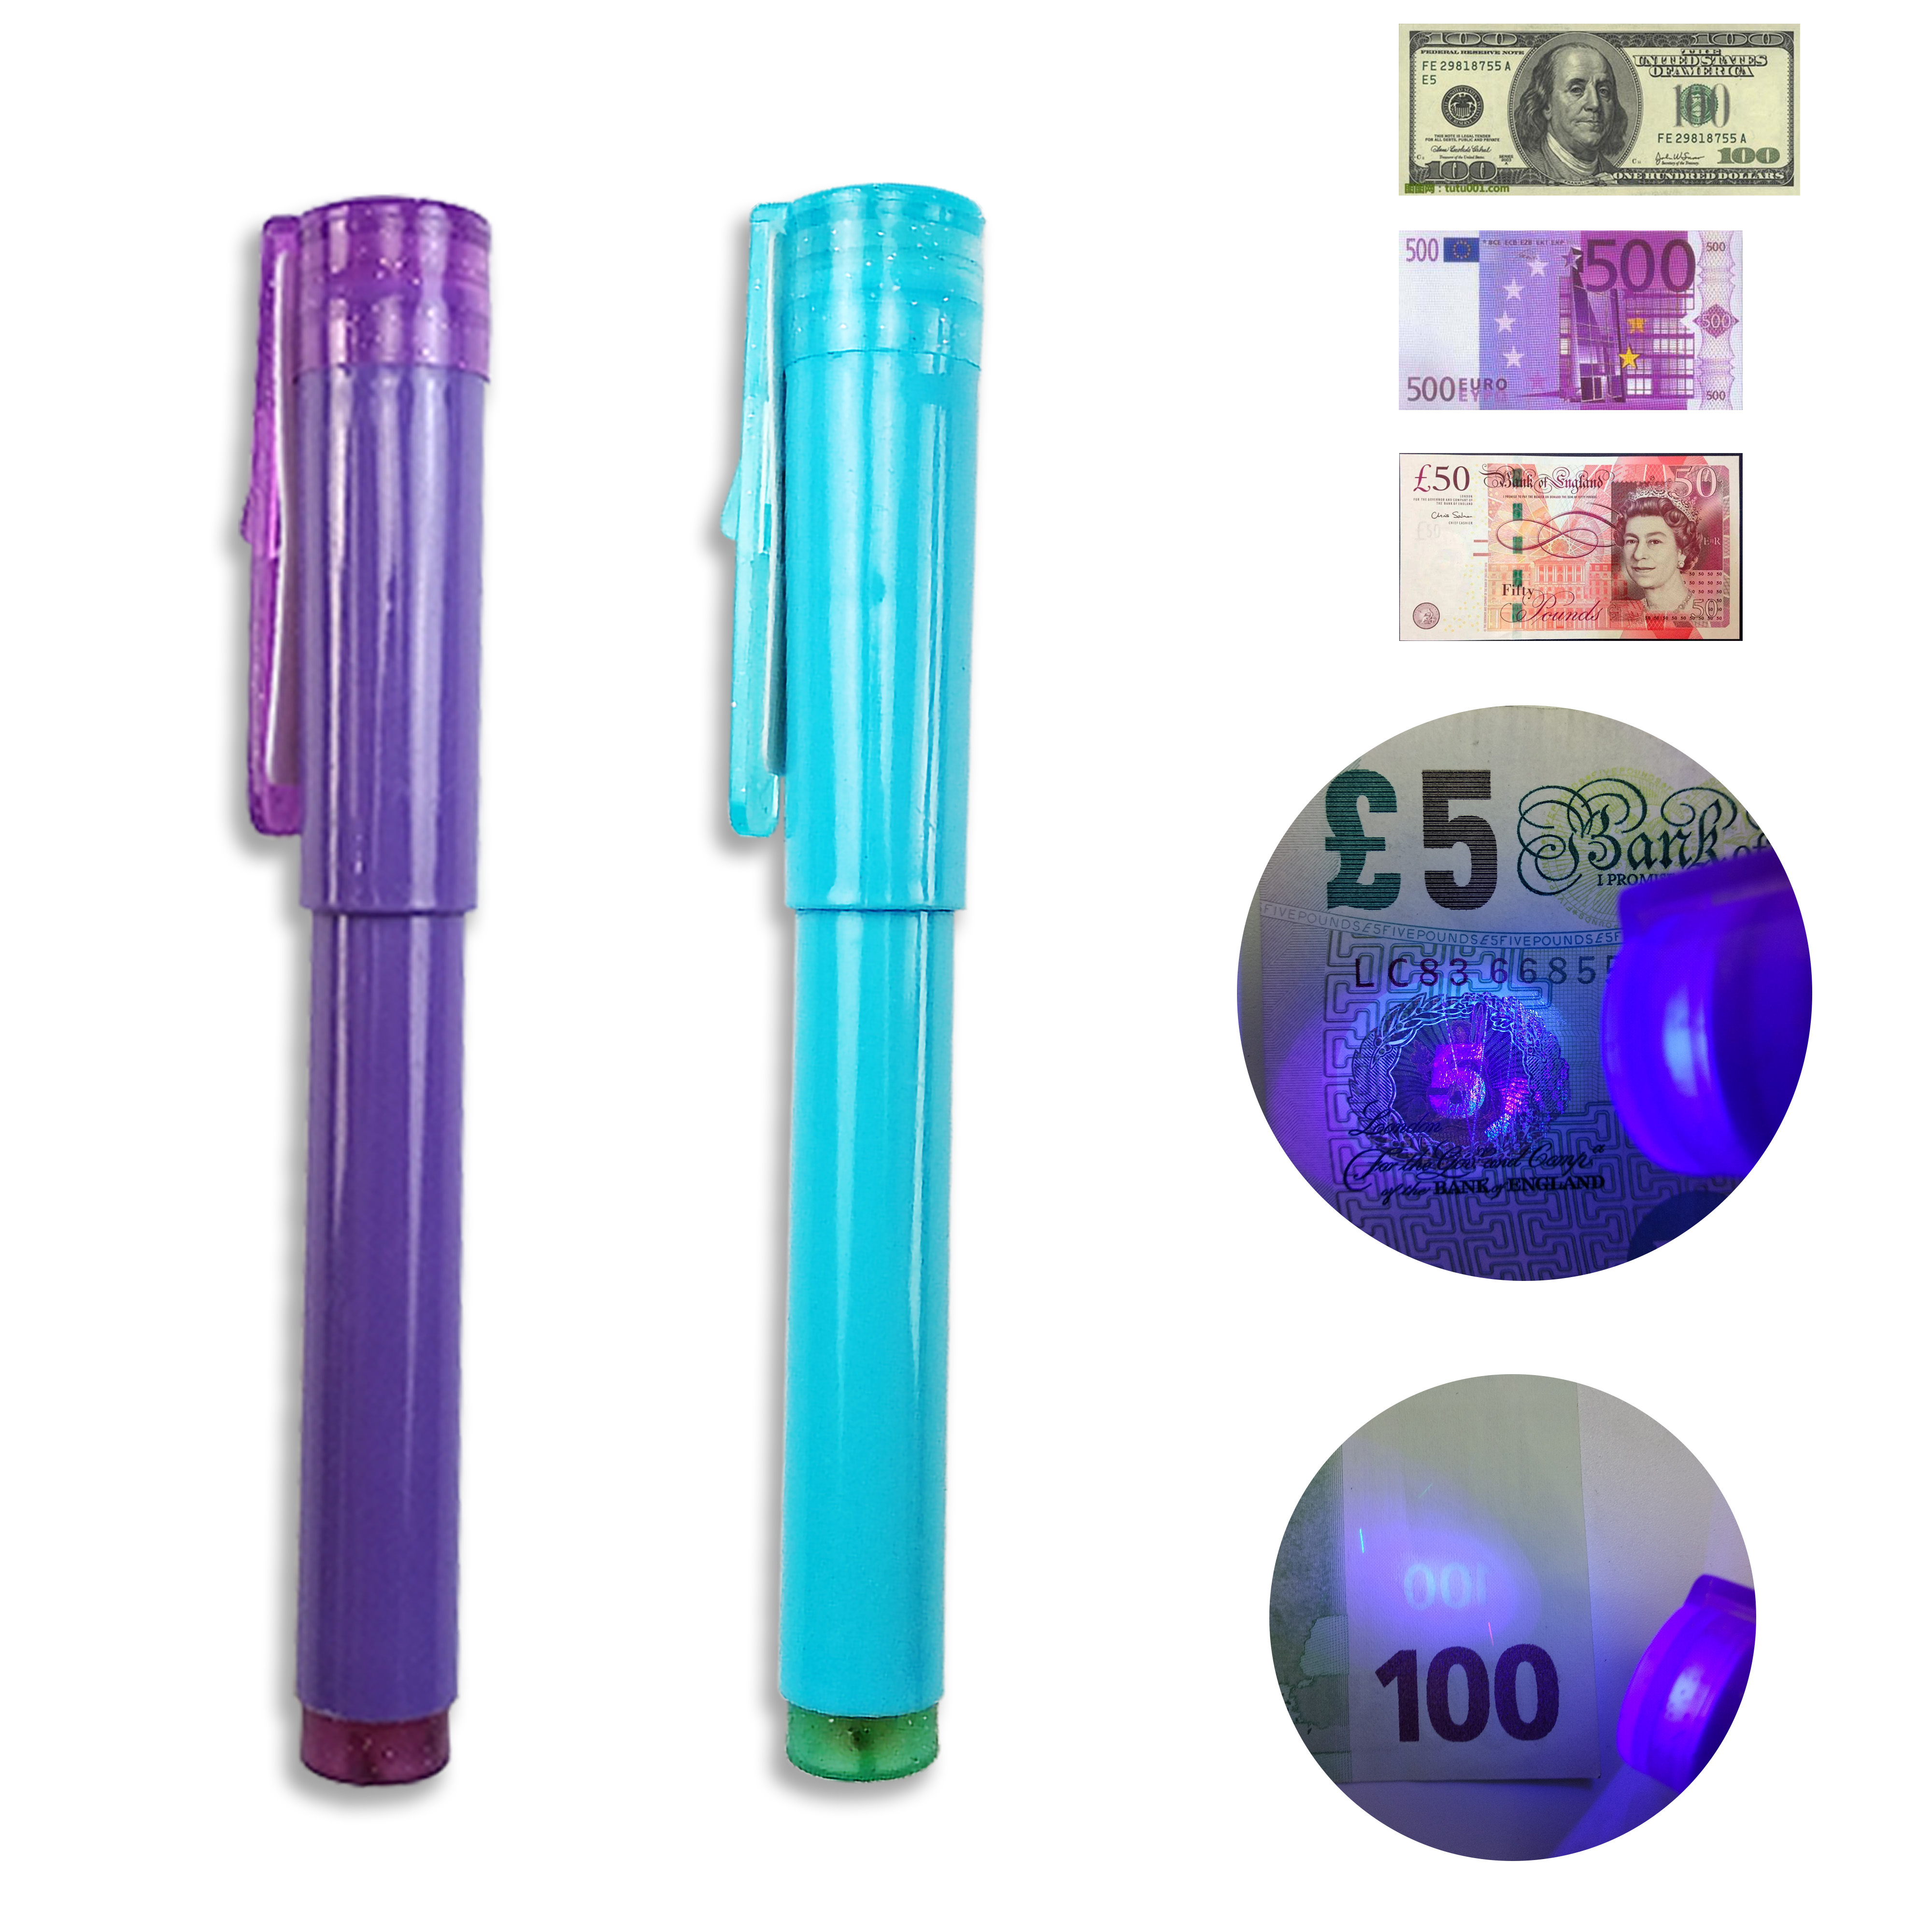 2 IN 1 Detector Pen with UV light Counterfeit Bank Note Tester Pen with Ball point Convenient Handy fake money Detector ball pen|Money Counter/Detector| |  - title=